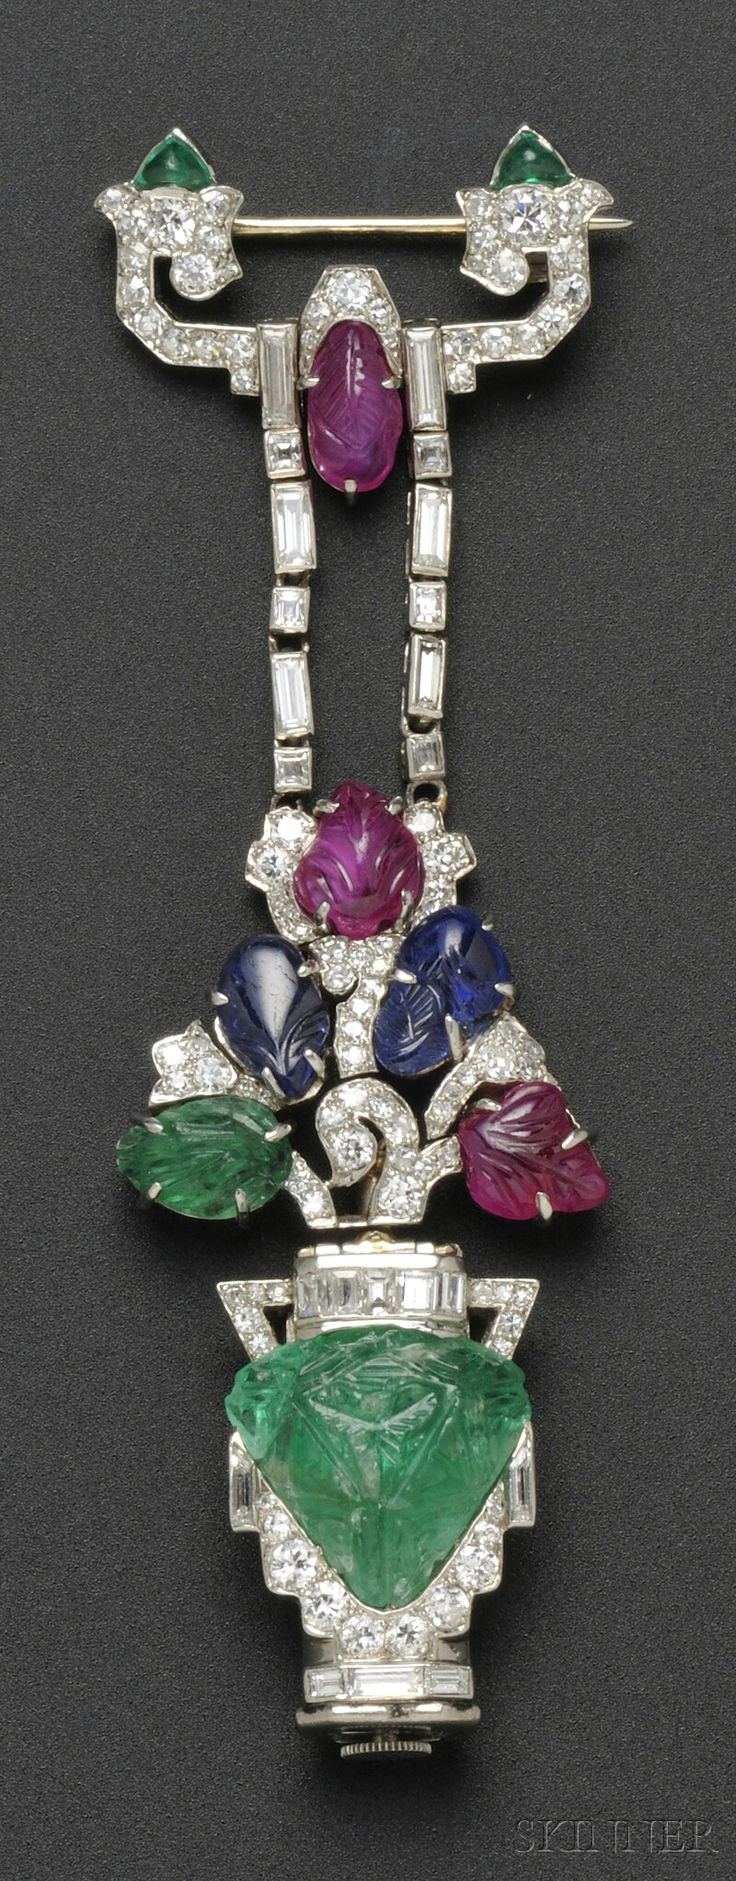 "Art Deco ""Tutti Frutti"" Pendant Watch, Mauboussin, France, designed as a carved emerald flowerpot with carved ruby, sapphire, and emerald blossoms, and transitional-, old single-, baguette-, and fancy-cut diamonds, enclosing 18-jewel manual-wind movement no. 3250, case no. 275, lg. 3 1/8 in., maker's mark and guarantee stamps, signed movement and watch case. @Deidra Brocké Wallace"